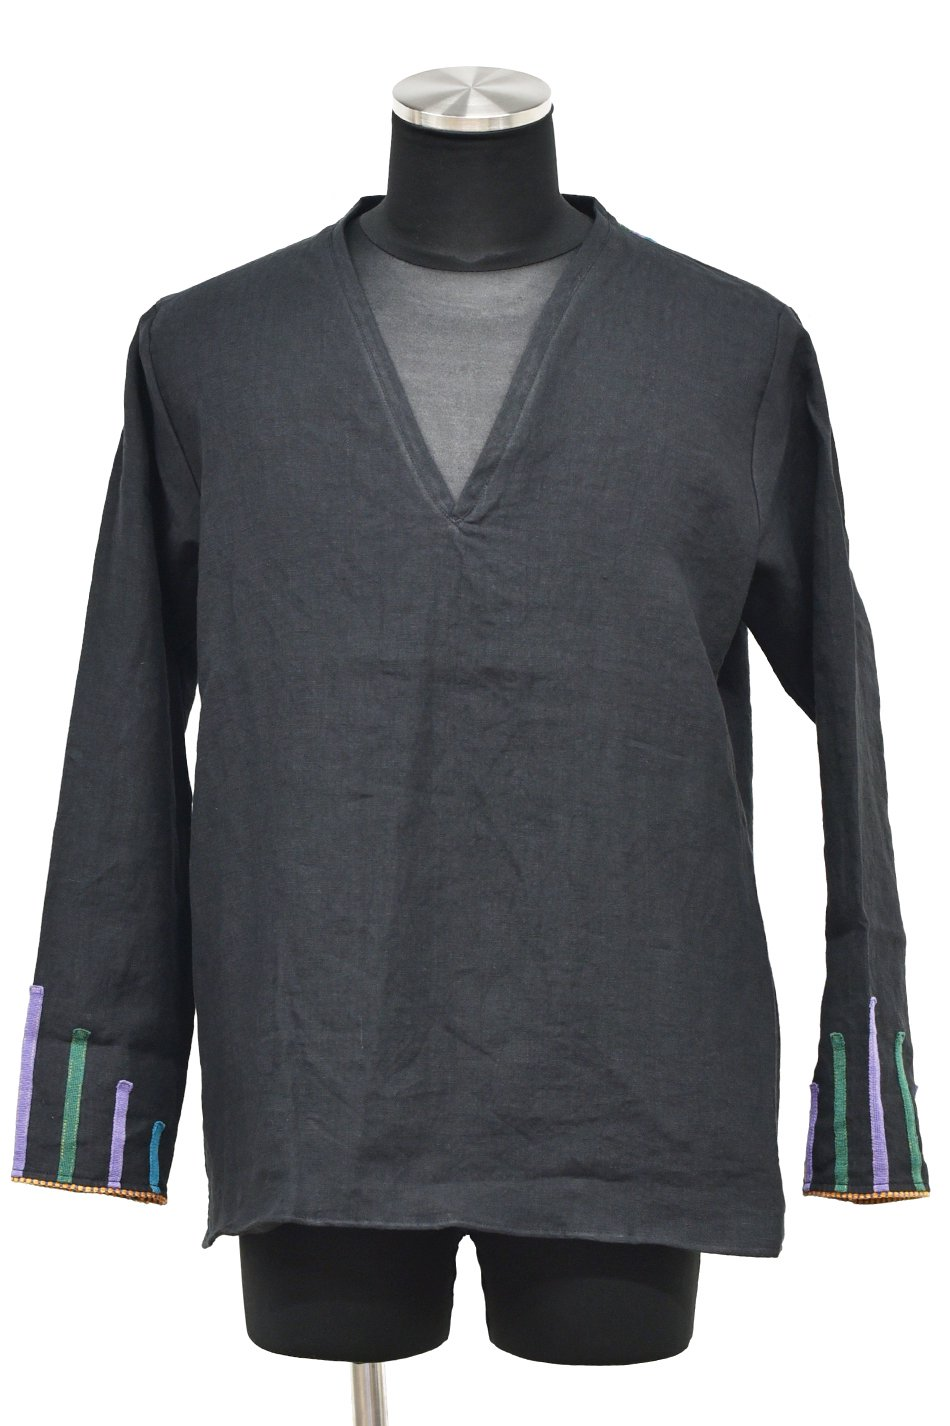 ARIGATO FAKKYU - アリガトファッキュ LINEN V-NECK PULL OVER / BLACK<img class='new_mark_img2' src='https://img.shop-pro.jp/img/new/icons5.gif' style='border:none;display:inline;margin:0px;padding:0px;width:auto;' />